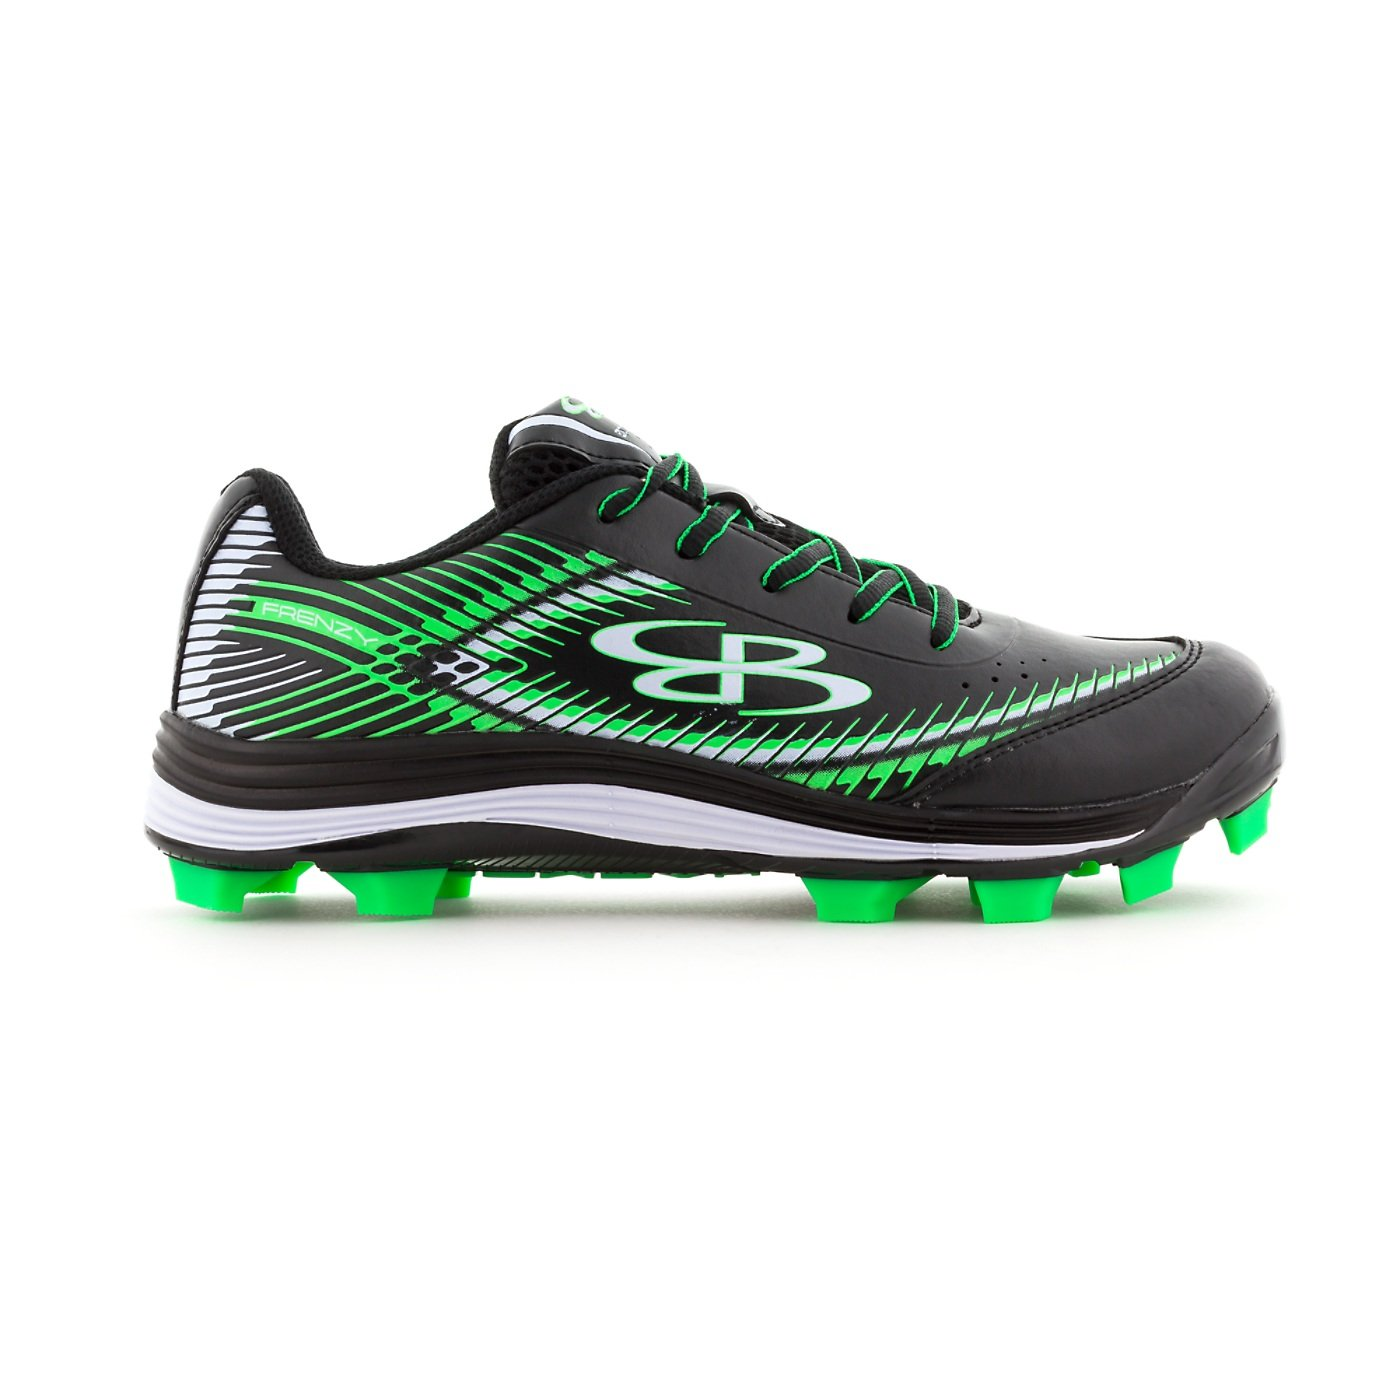 Boombah Women's Frenzy Molded Cleats Black/Lime Green - Size 9 by Boombah